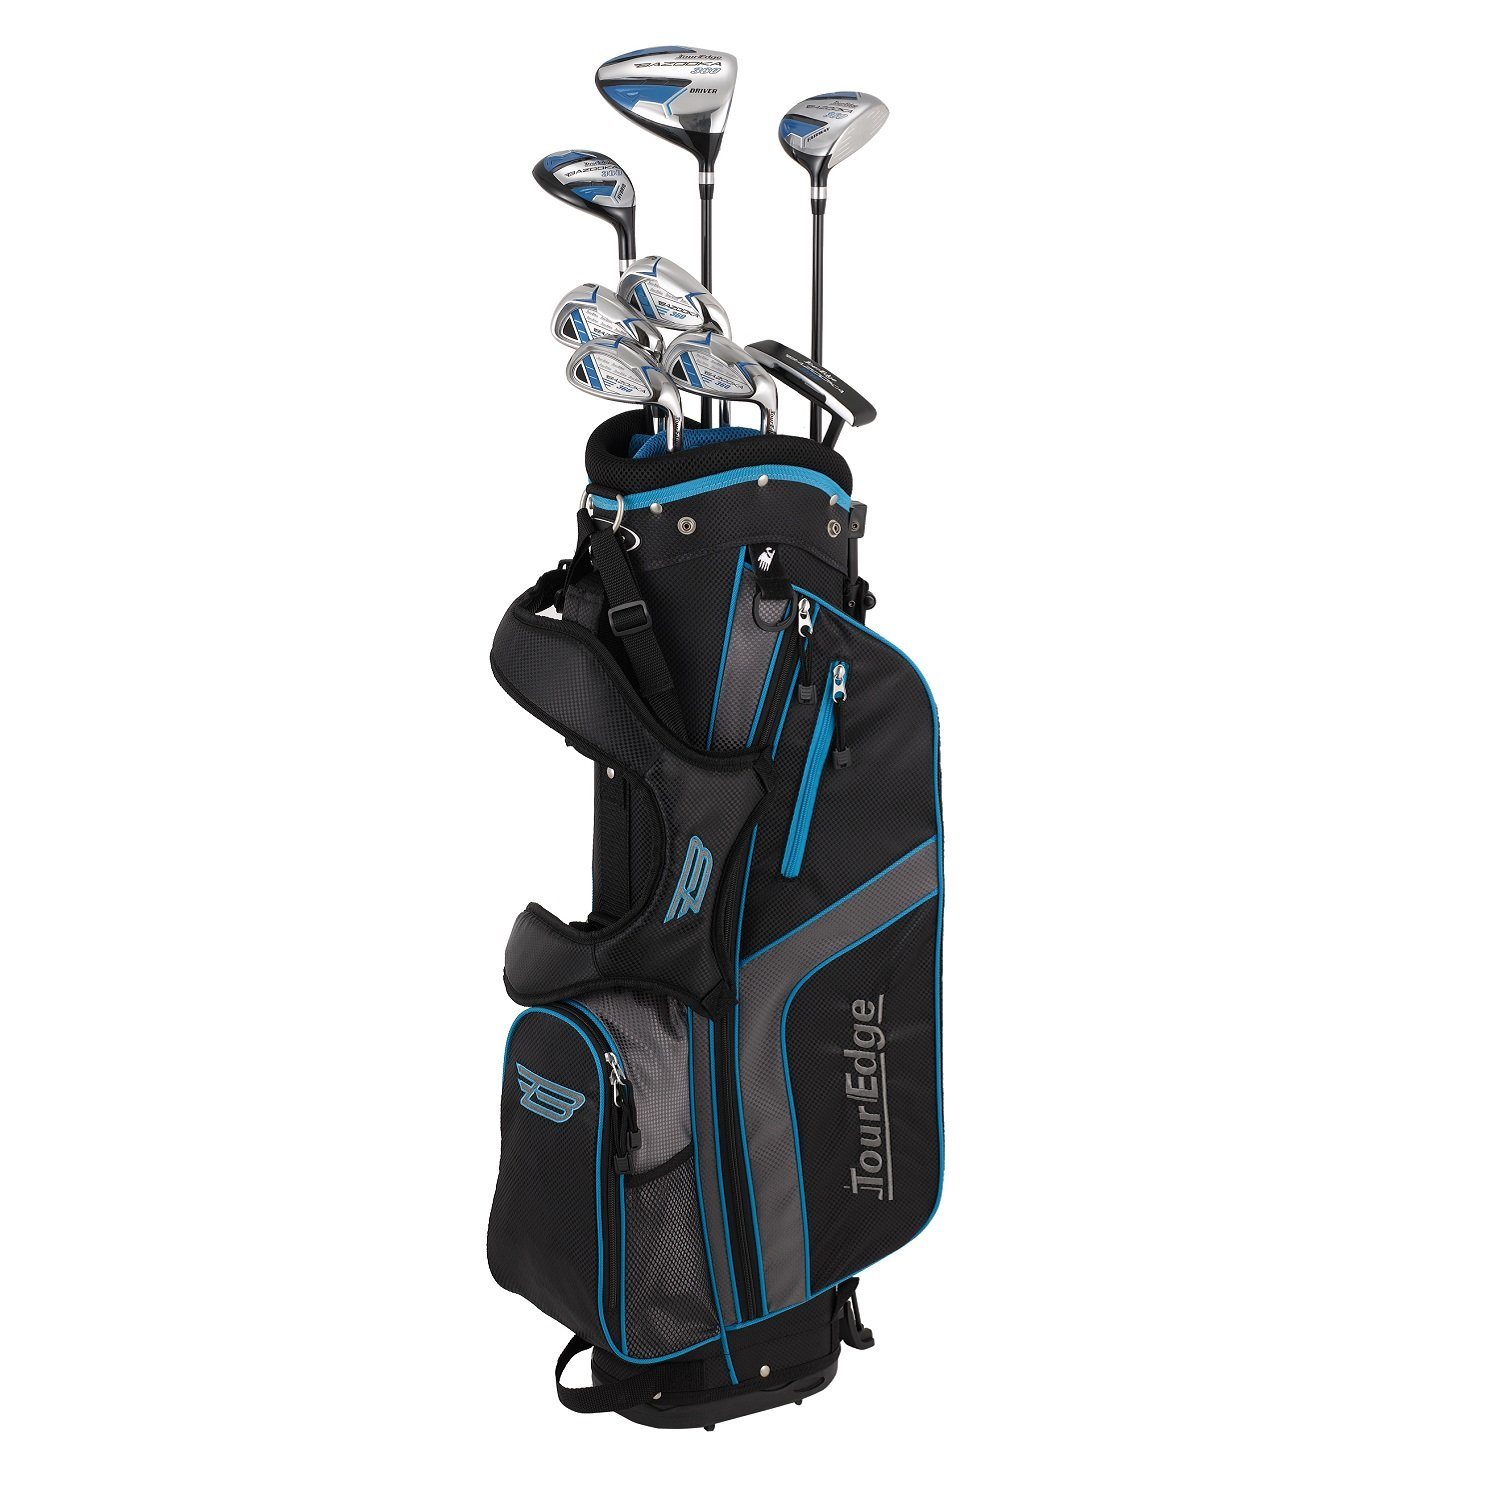 Tour Edge Unisex B3SRGU11.B Bazooka 360 Teen Golf Set Right Hand, Black/Blue by Tour Edge (Image #1)